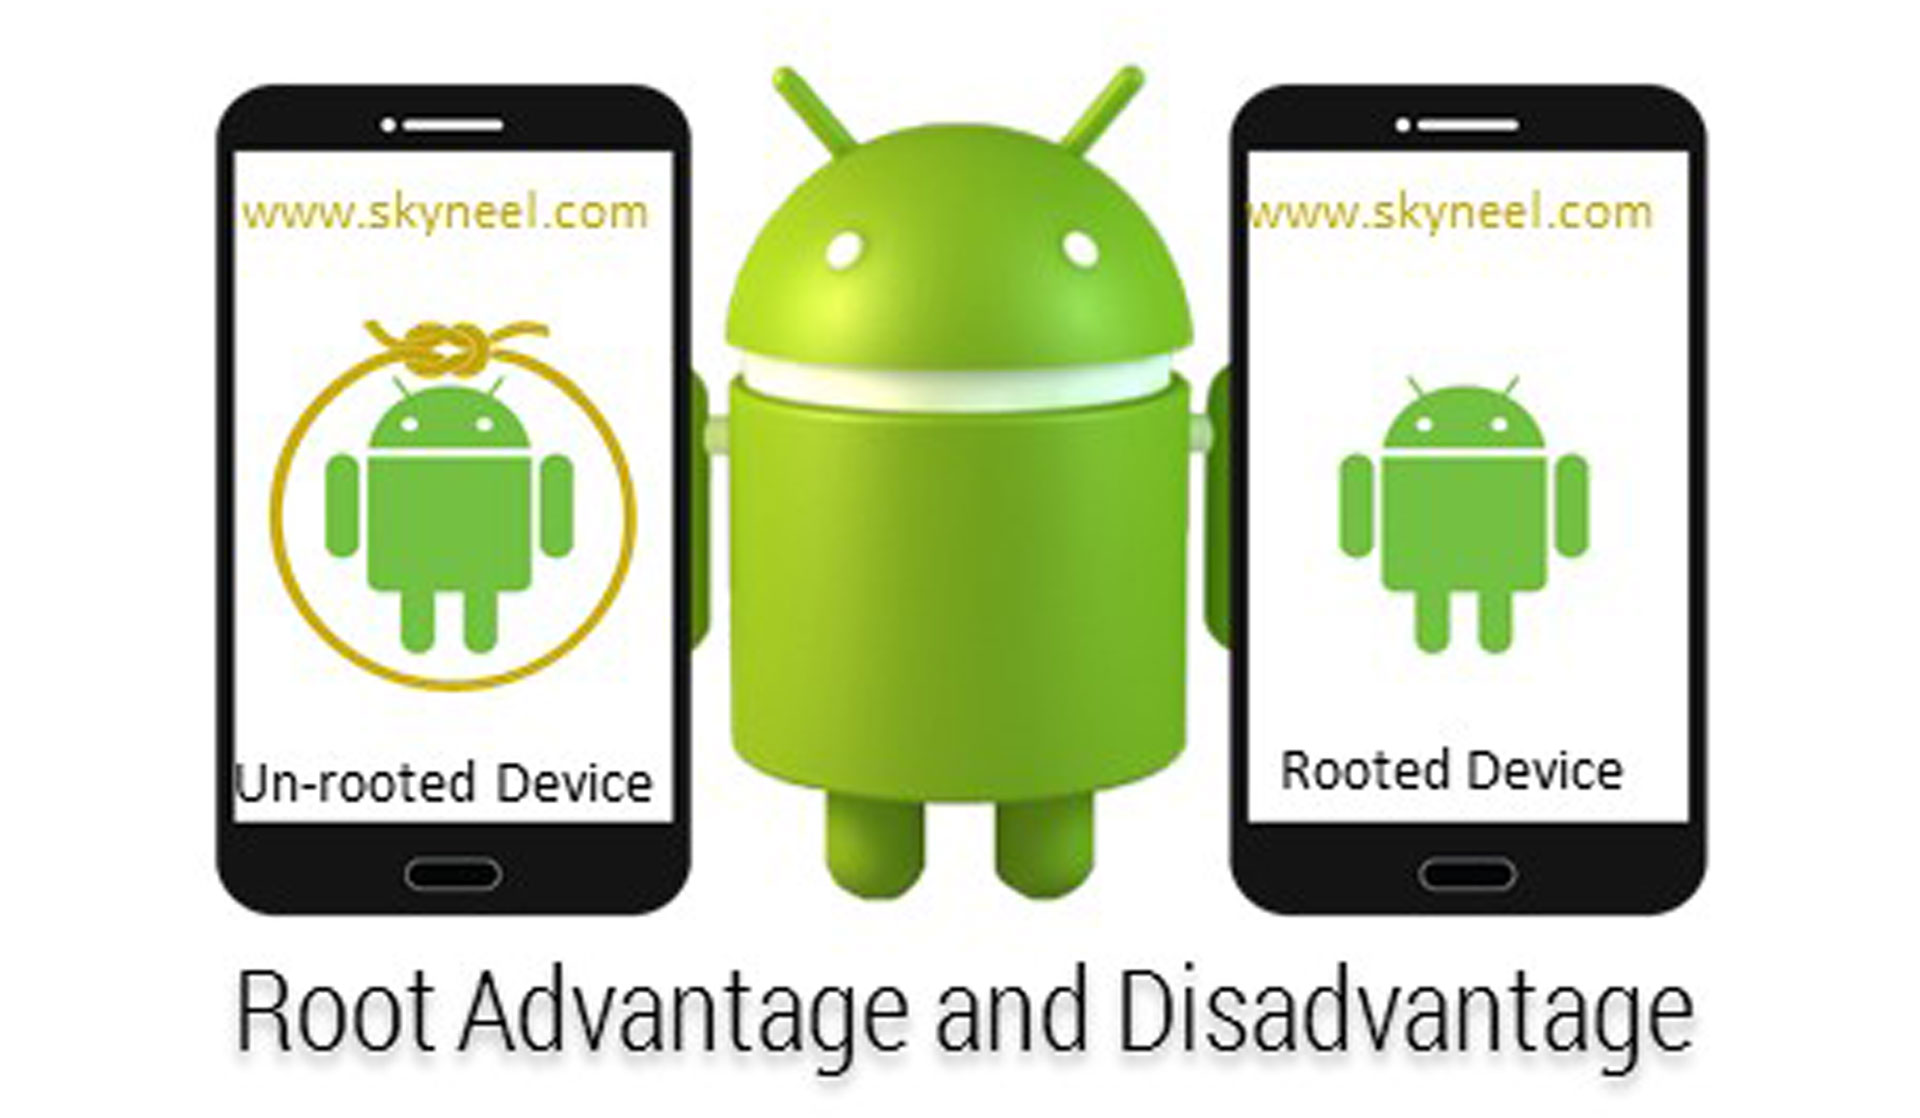 Phone Advantages Of A Rooted Android Phone rooted android device root advantage and disadvantage